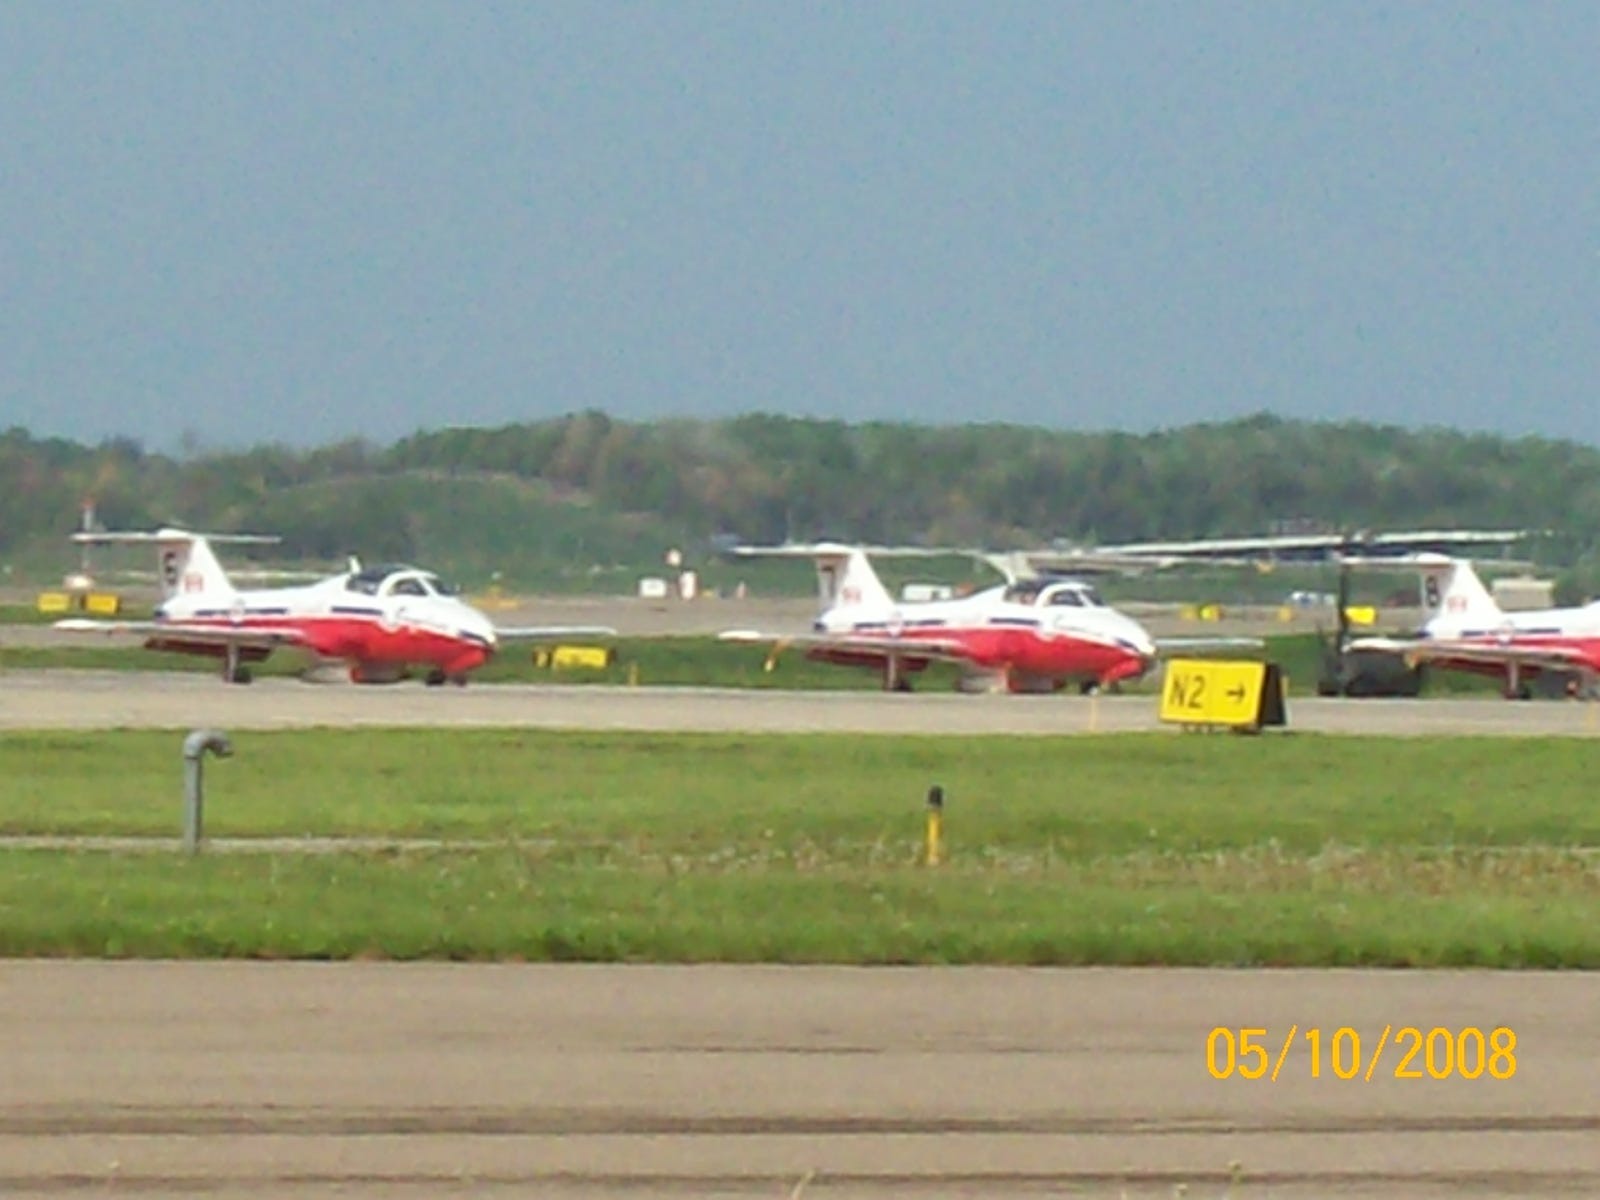 CT-114 Tutors of the 431 Air Demonstration Squadron, better known as the Canadian Snowbirds